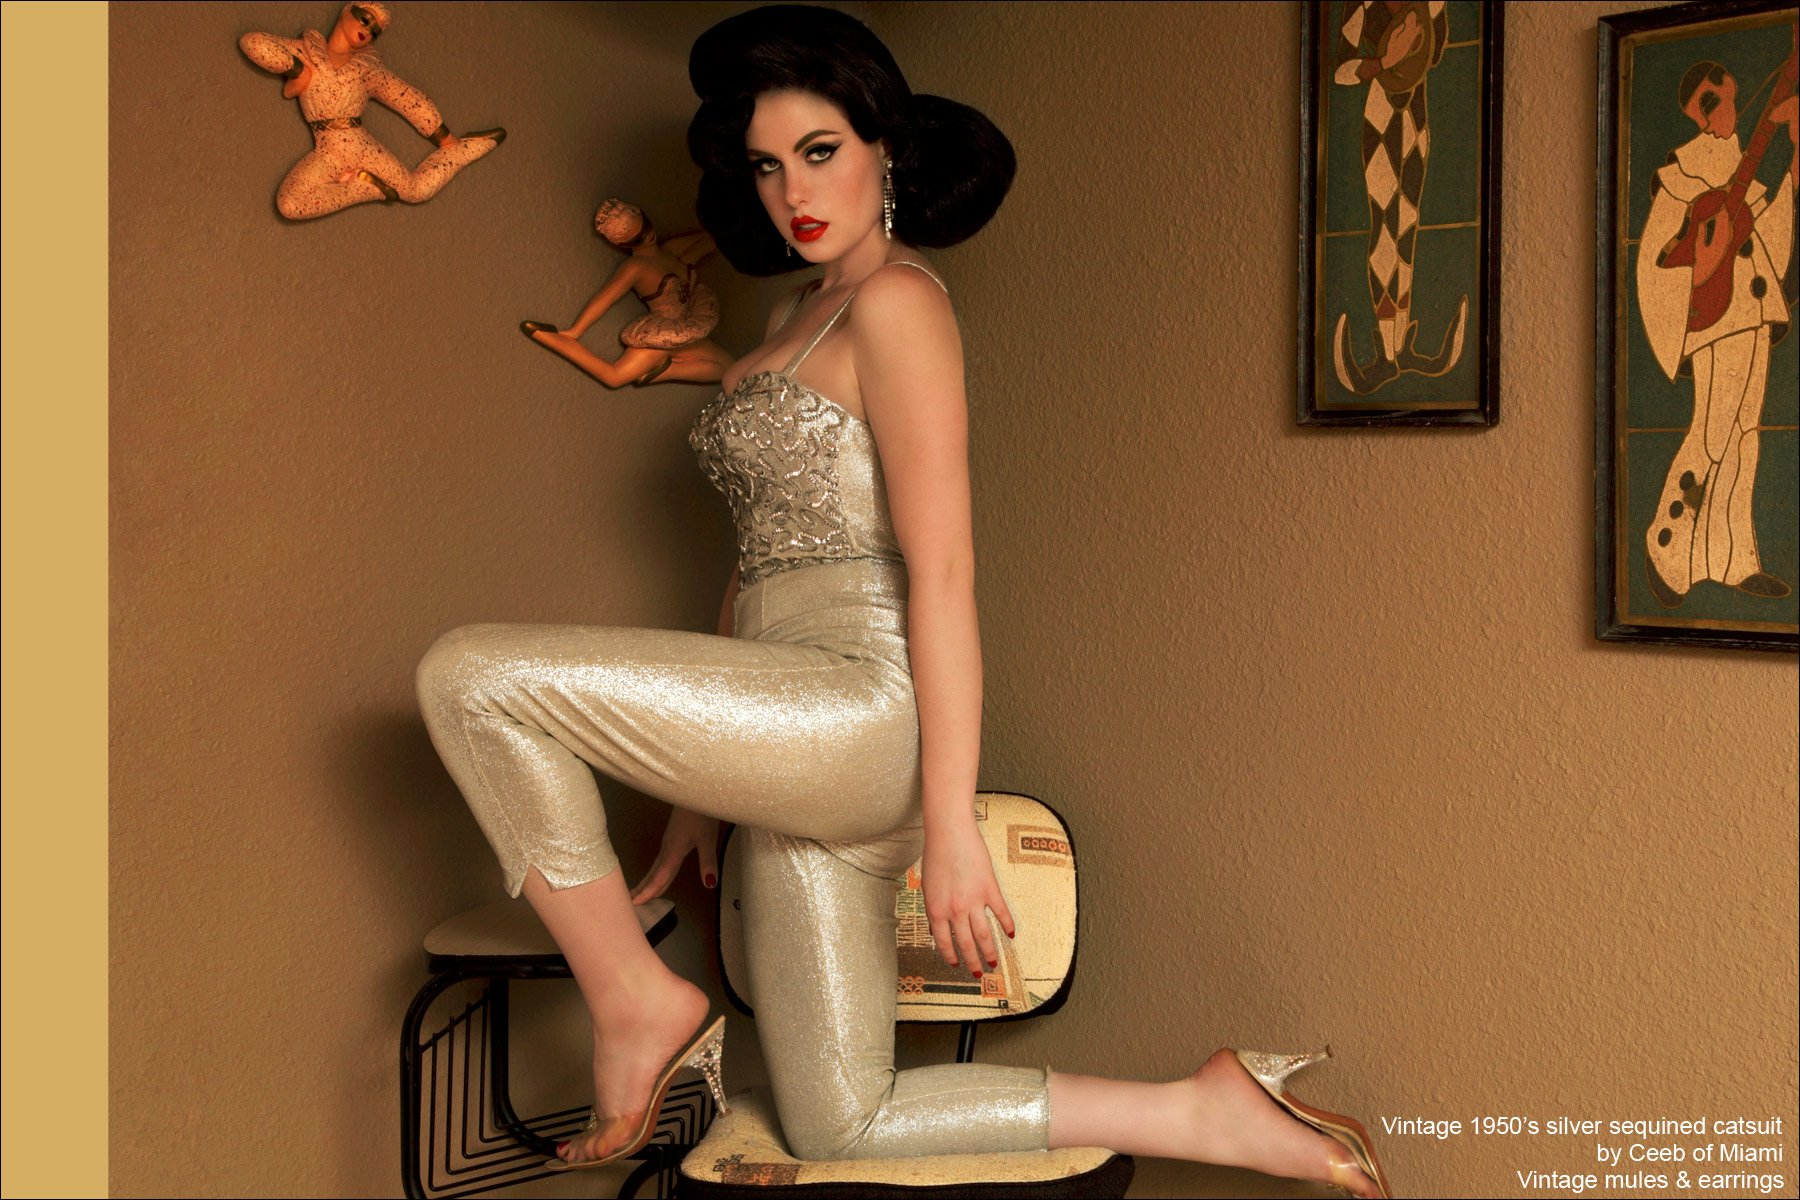 Doris Mayday photographed in a vintage 1950's silver catsuit. Photographed for Ponyboy Magazine by Alexander Thompson.